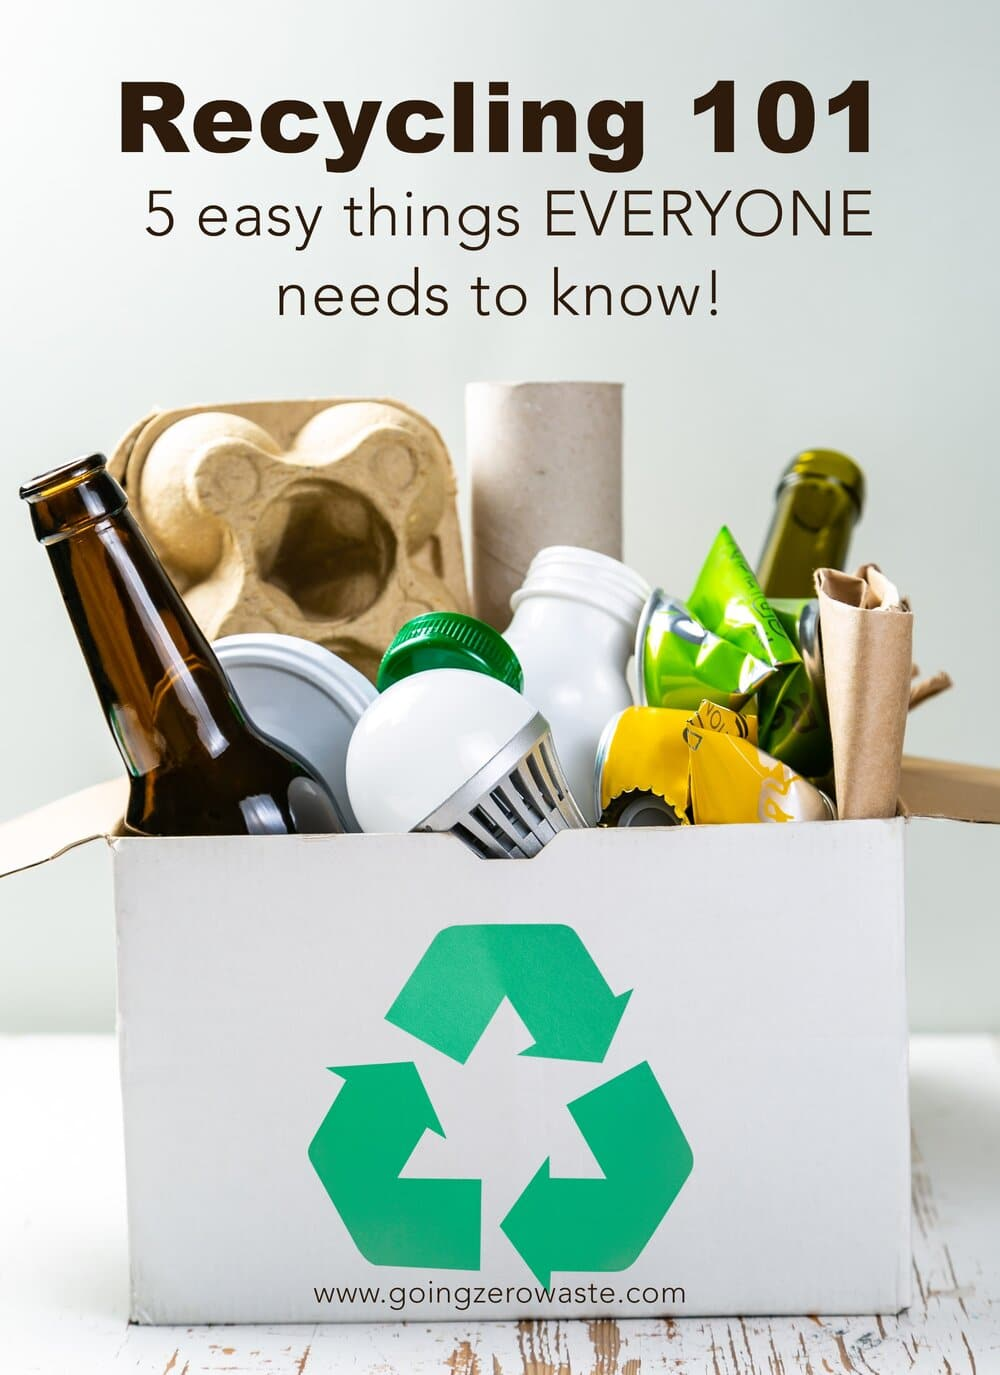 Recycling 101 - 5 Easy Things EVERYONE Needs to Know!